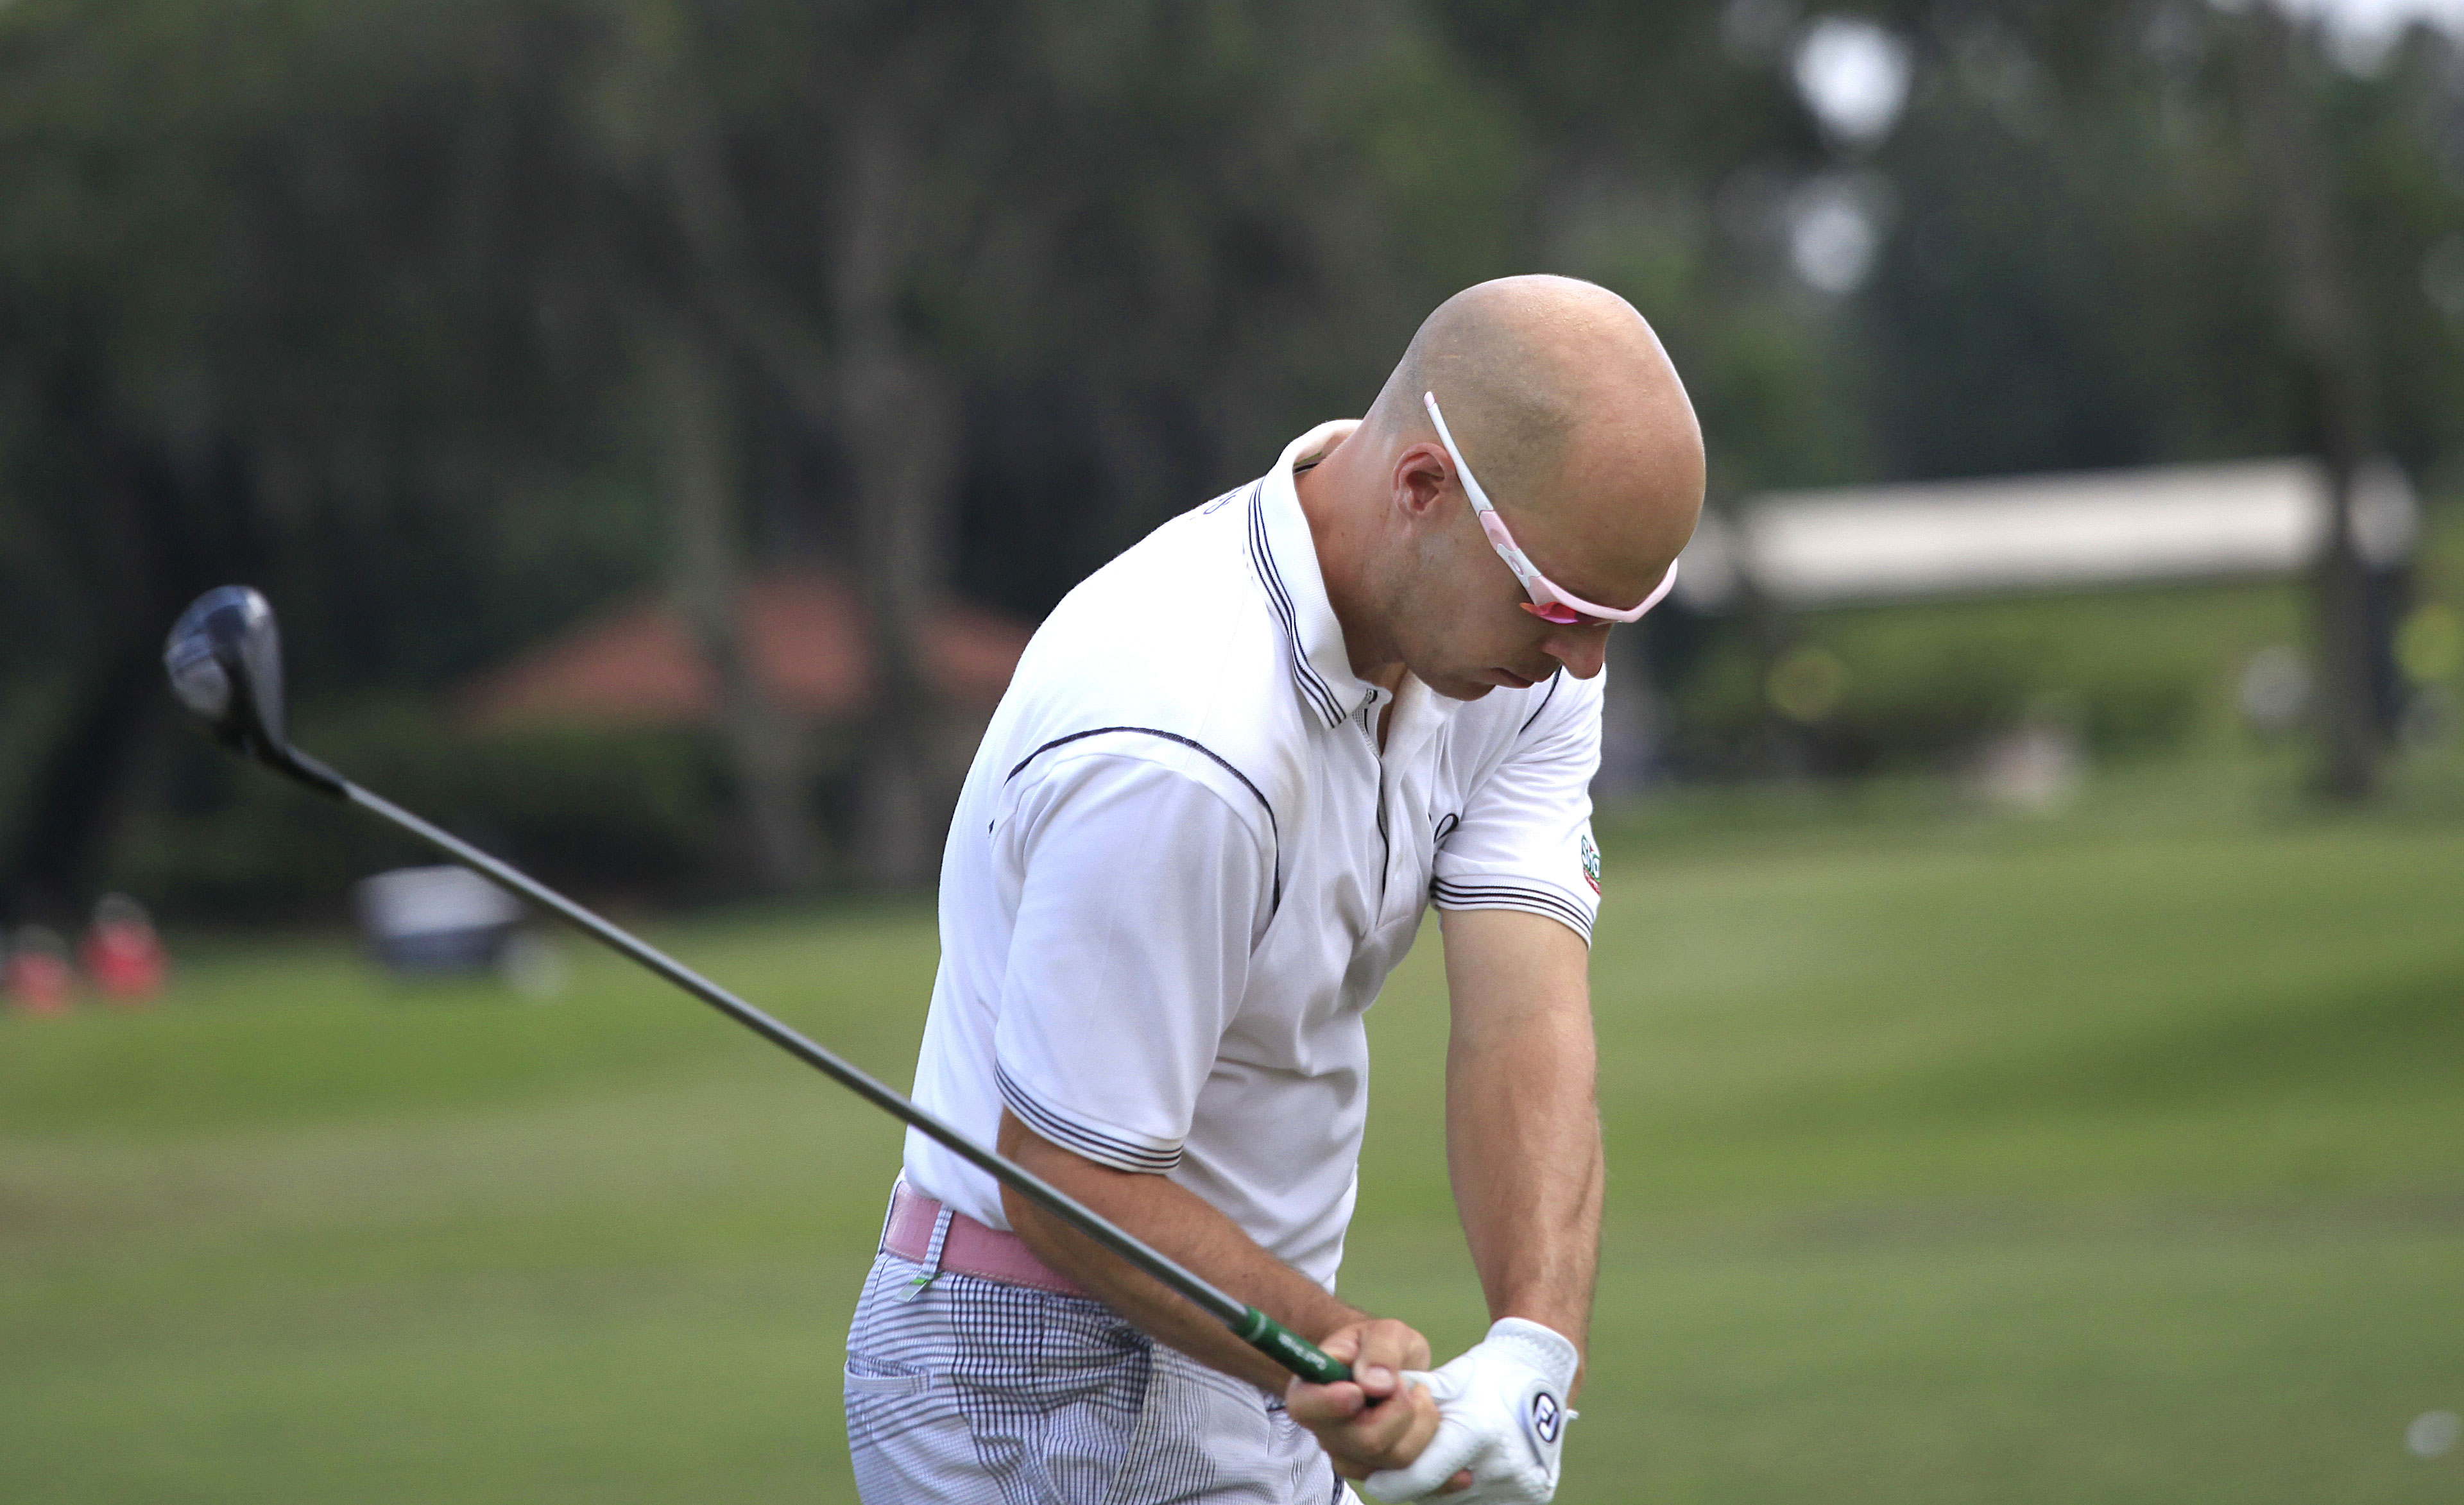 Are My Hips Too Fast in My Golf Swing? | Golf Loopy - Play Your Golf